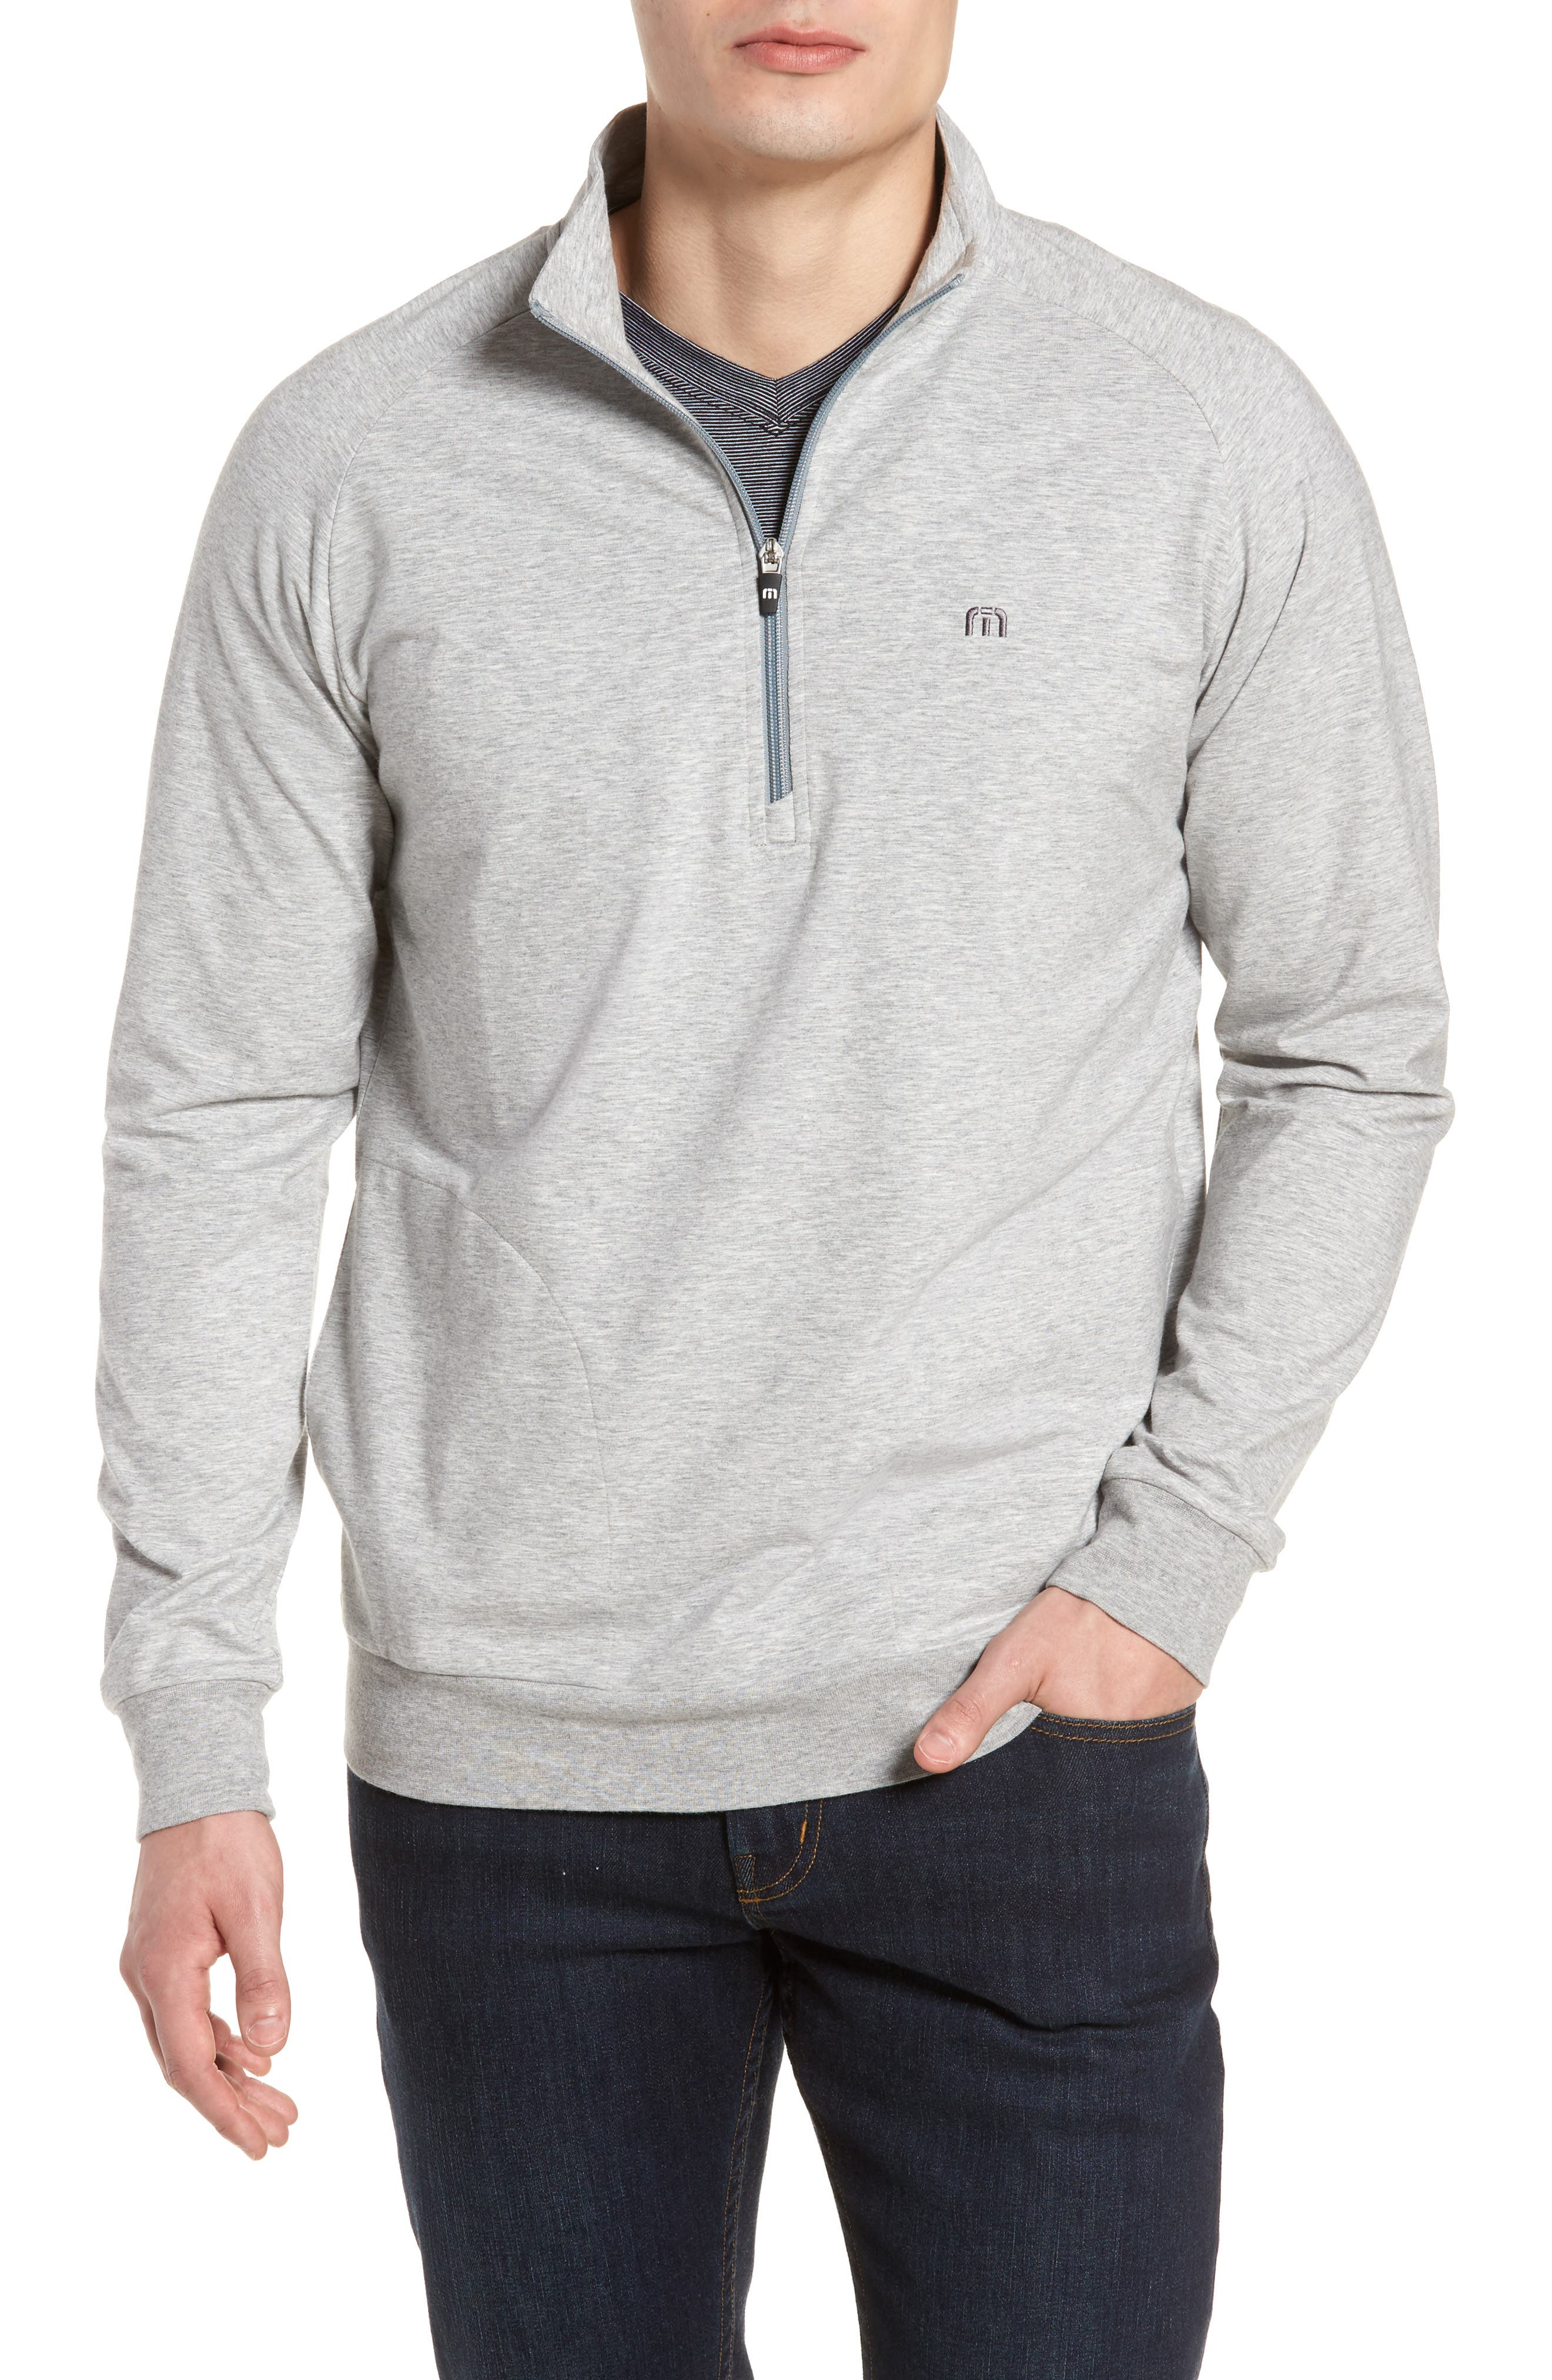 'Strange Love' Trim Fit Wrinkle Resistant Quarter Zip Jacket,                             Main thumbnail 1, color,                             Heather Alloy